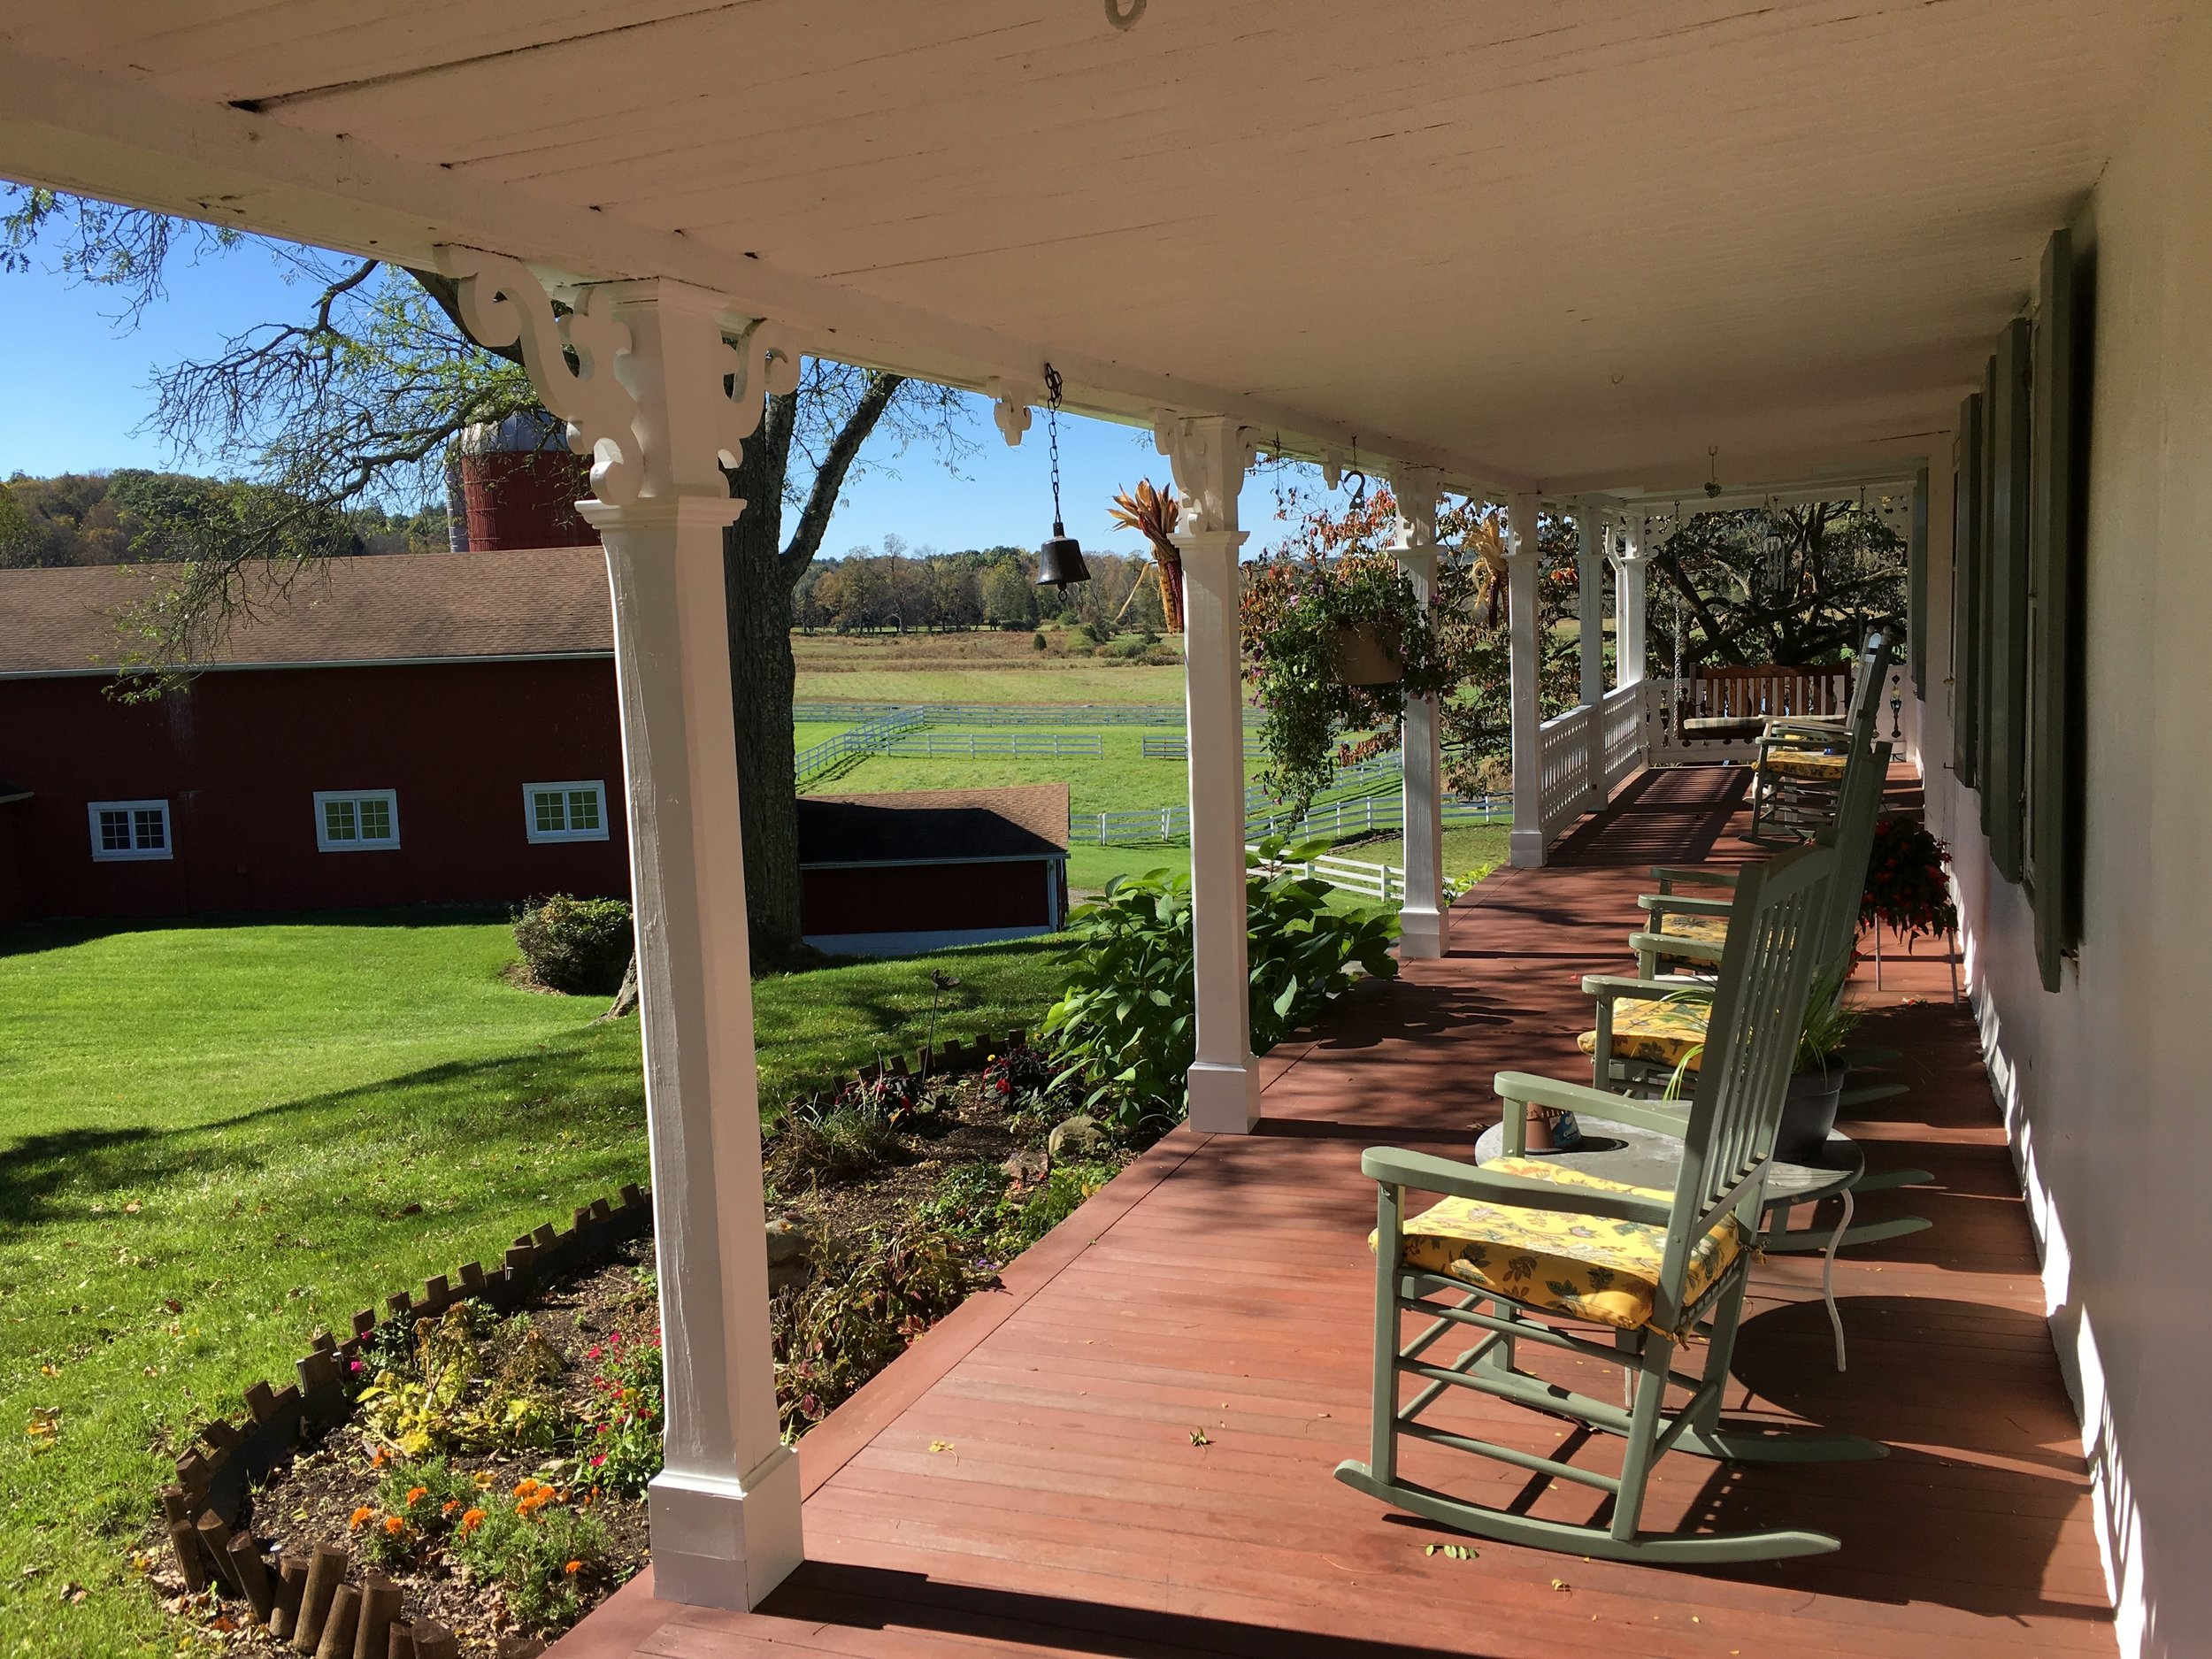 Front porch of the house overlooking the property